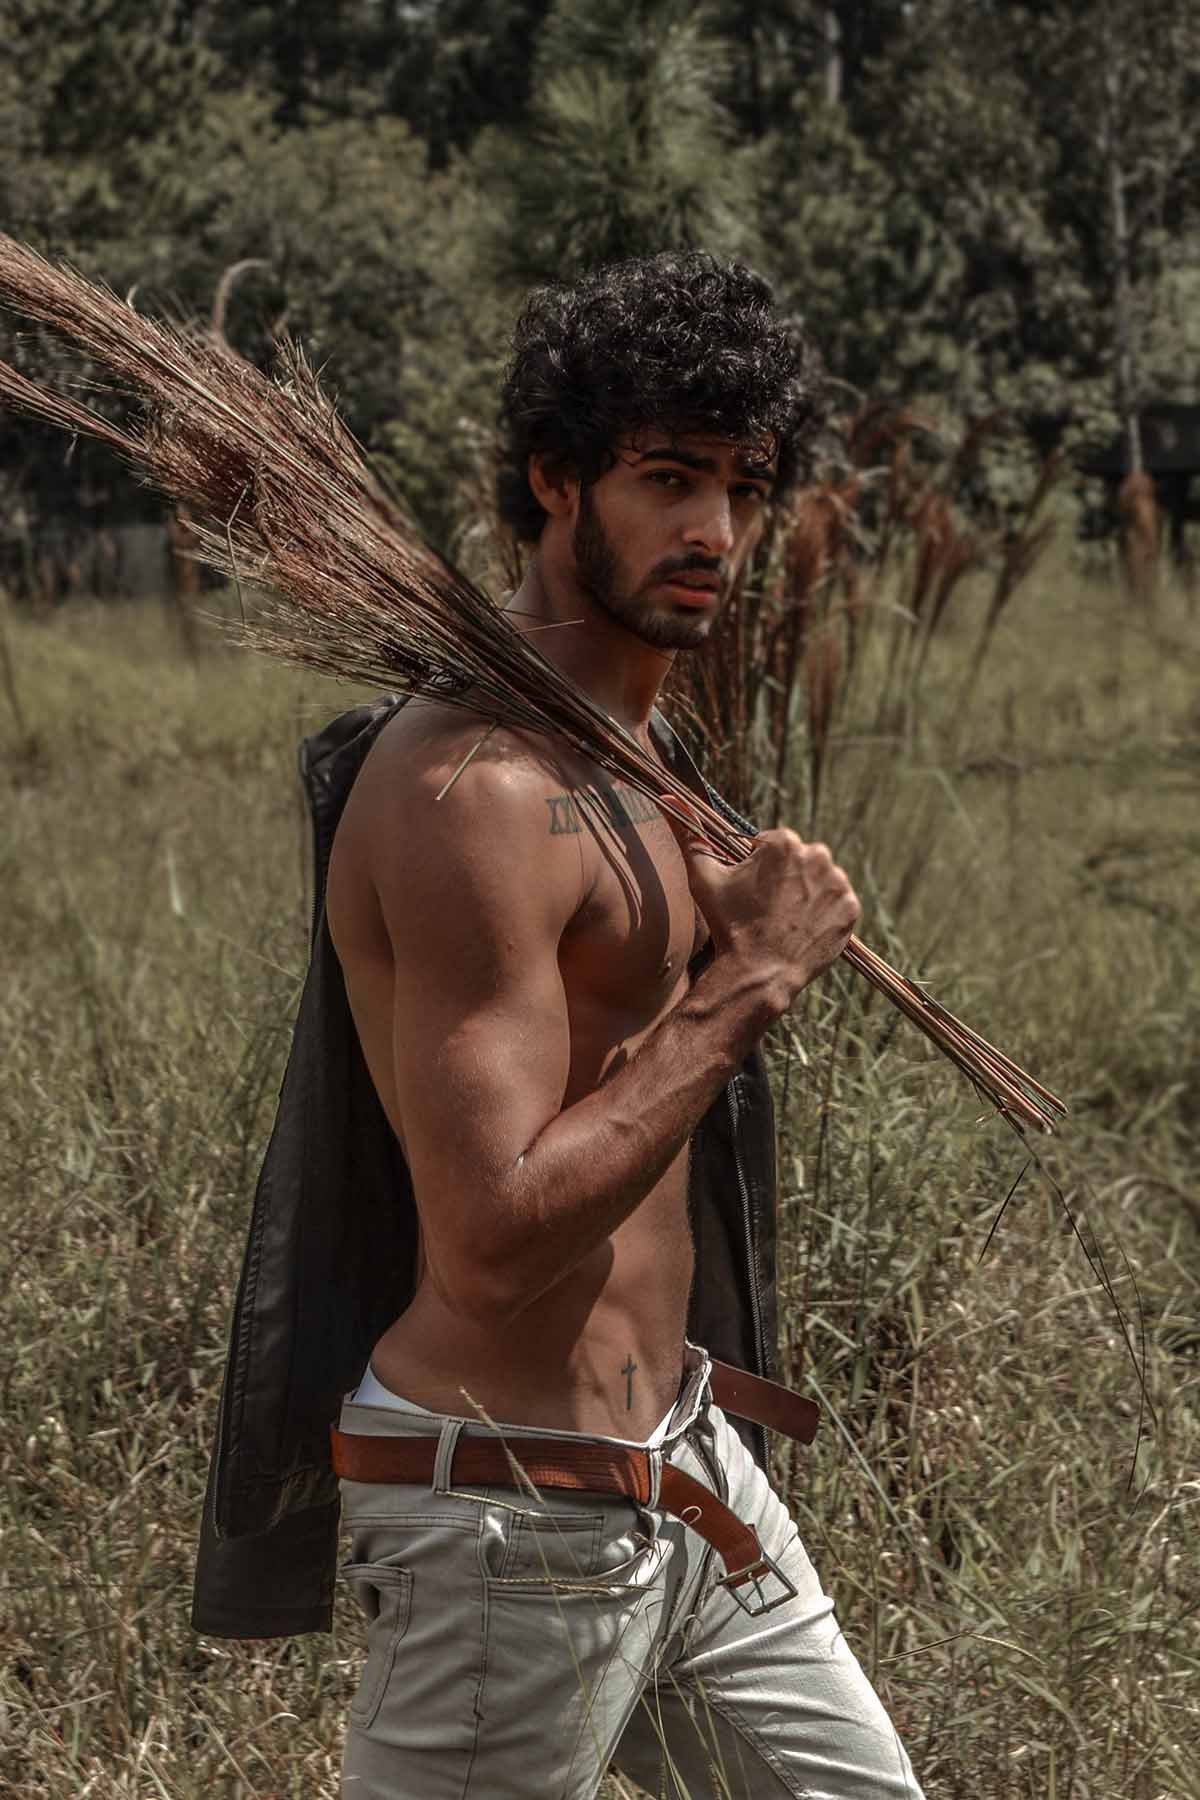 Caio Andrade by Raul Felipe Rodrigues for Brazilian Male Model